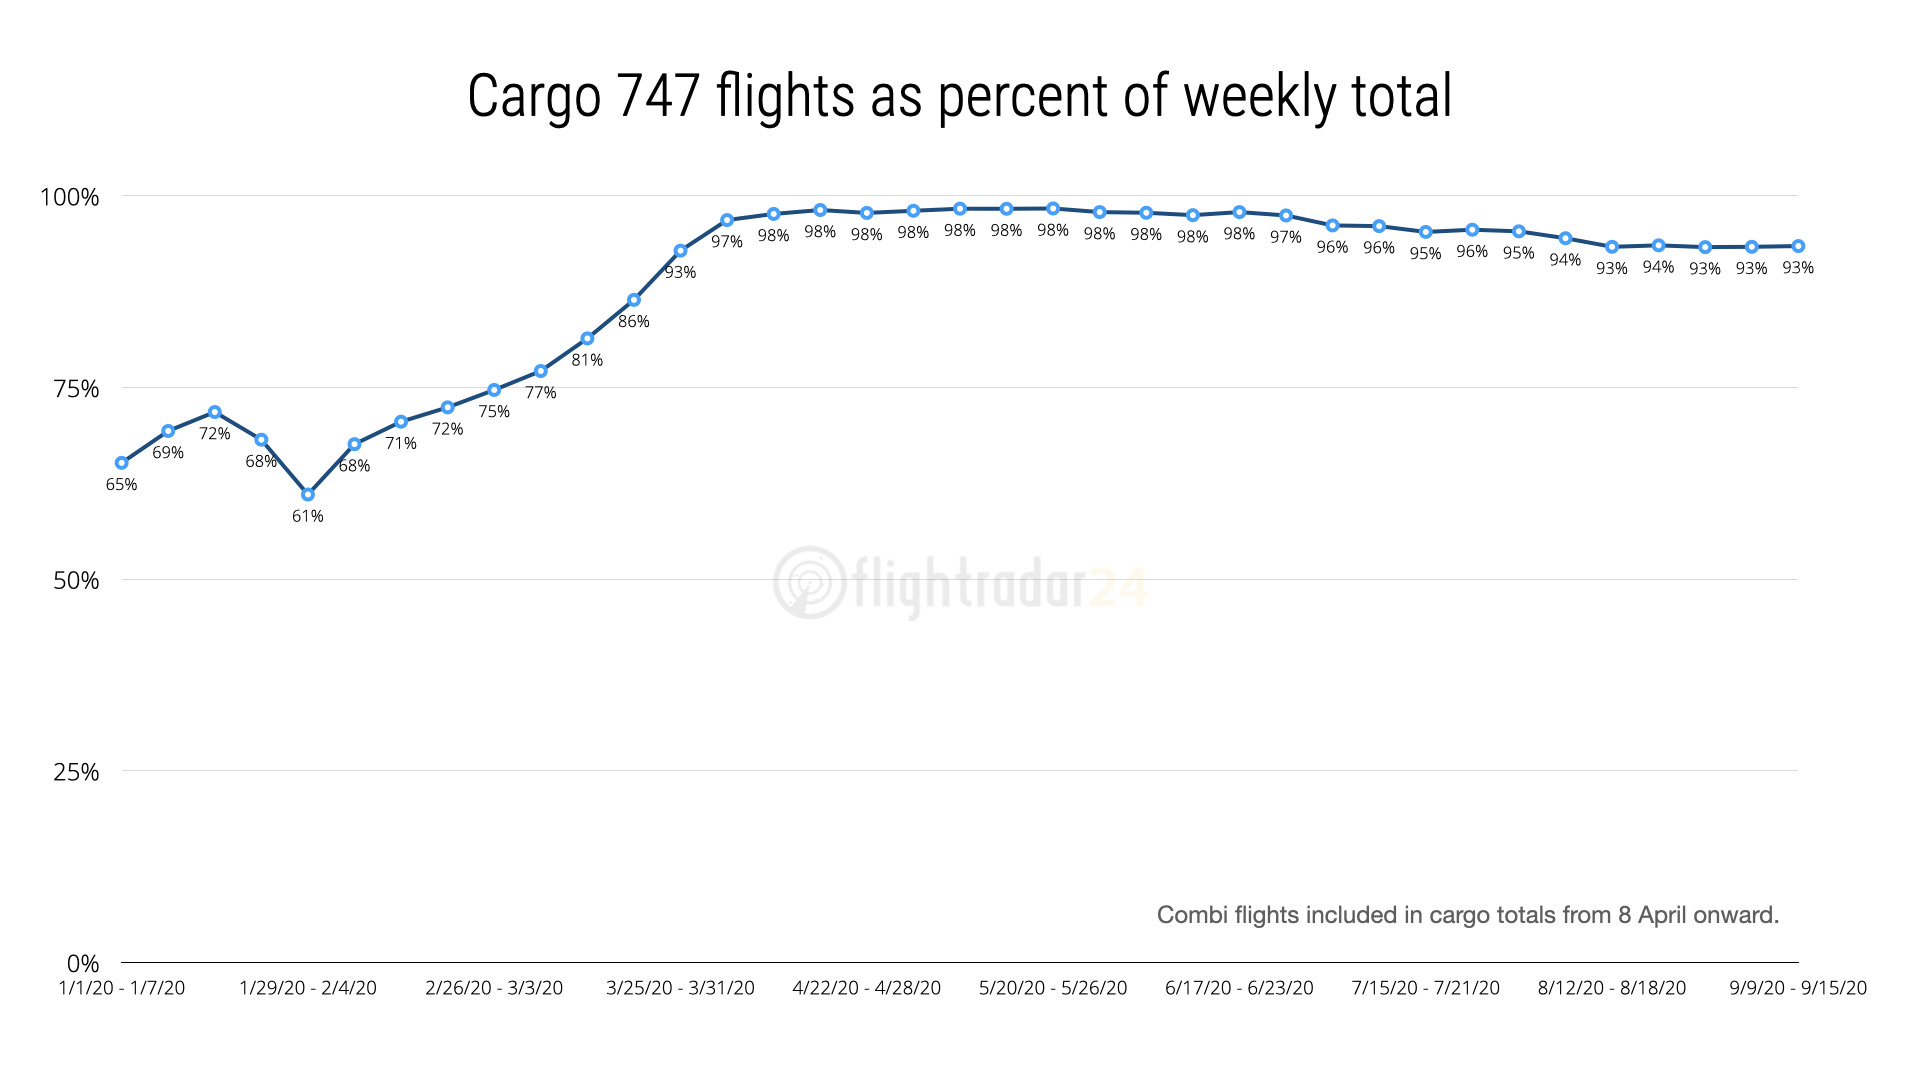 Cargo flights as percent of weekly total